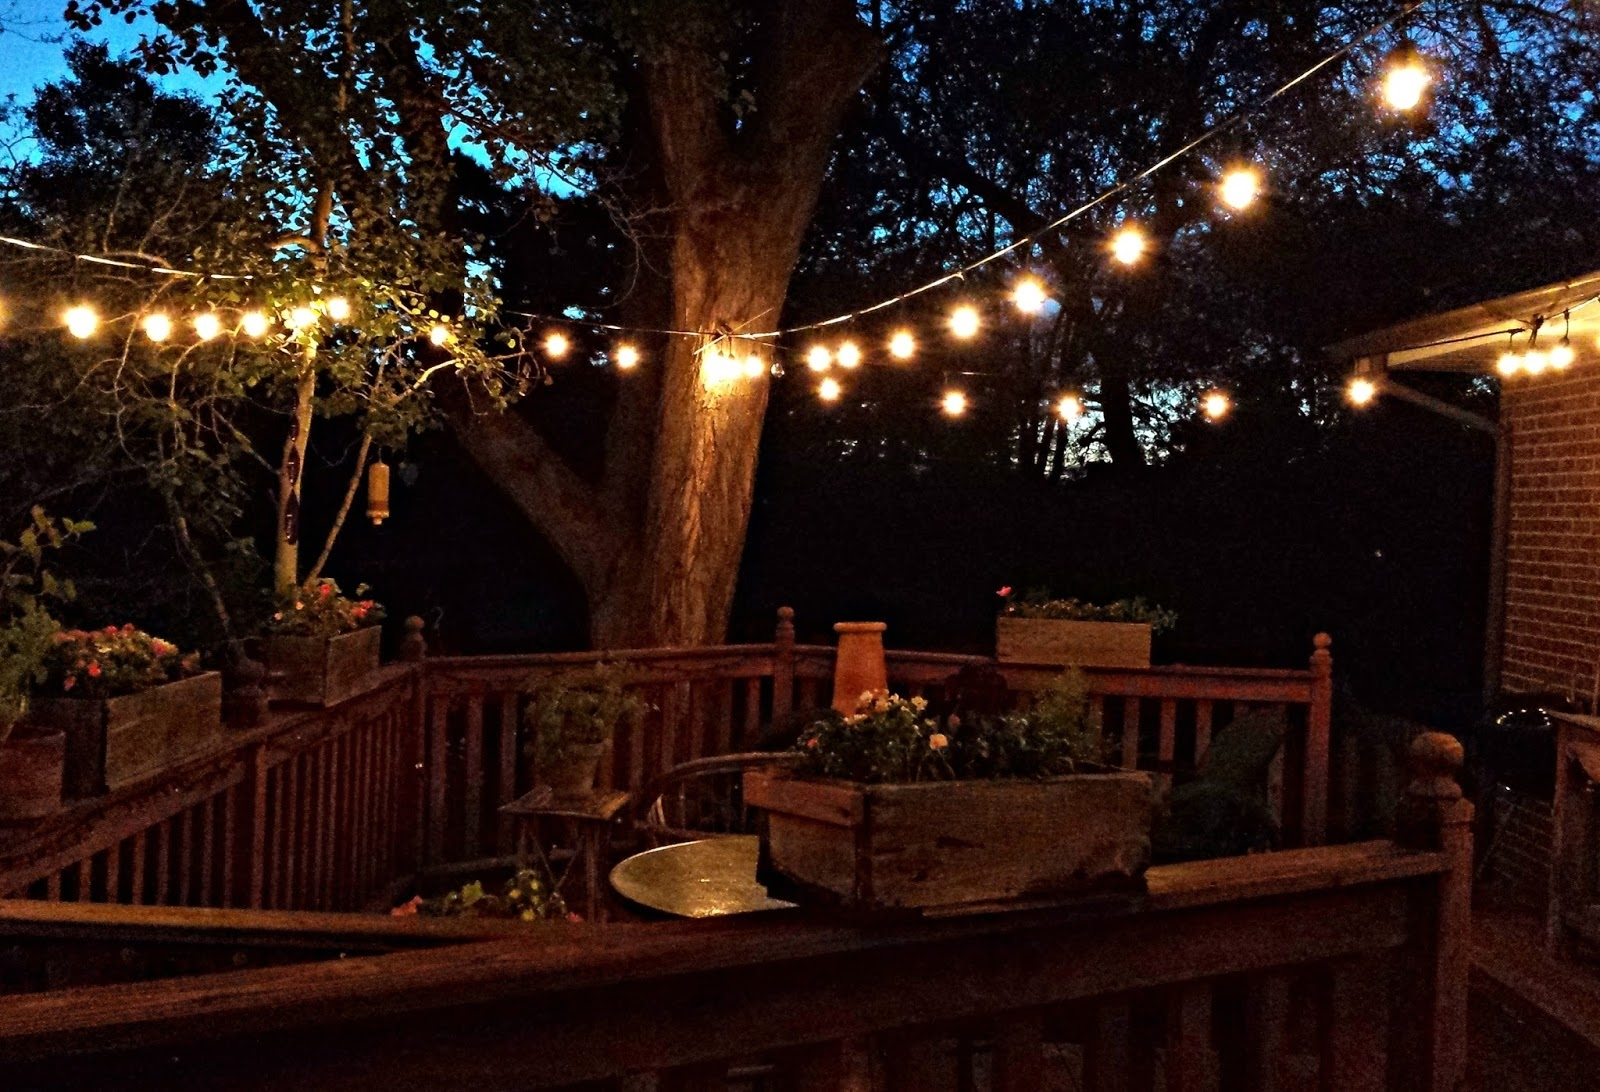 How To Hang Outdoor Lights On Deck - Outdoor Lighting Ideas pertaining to Outdoor Lanterns for Deck (Image 9 of 20)